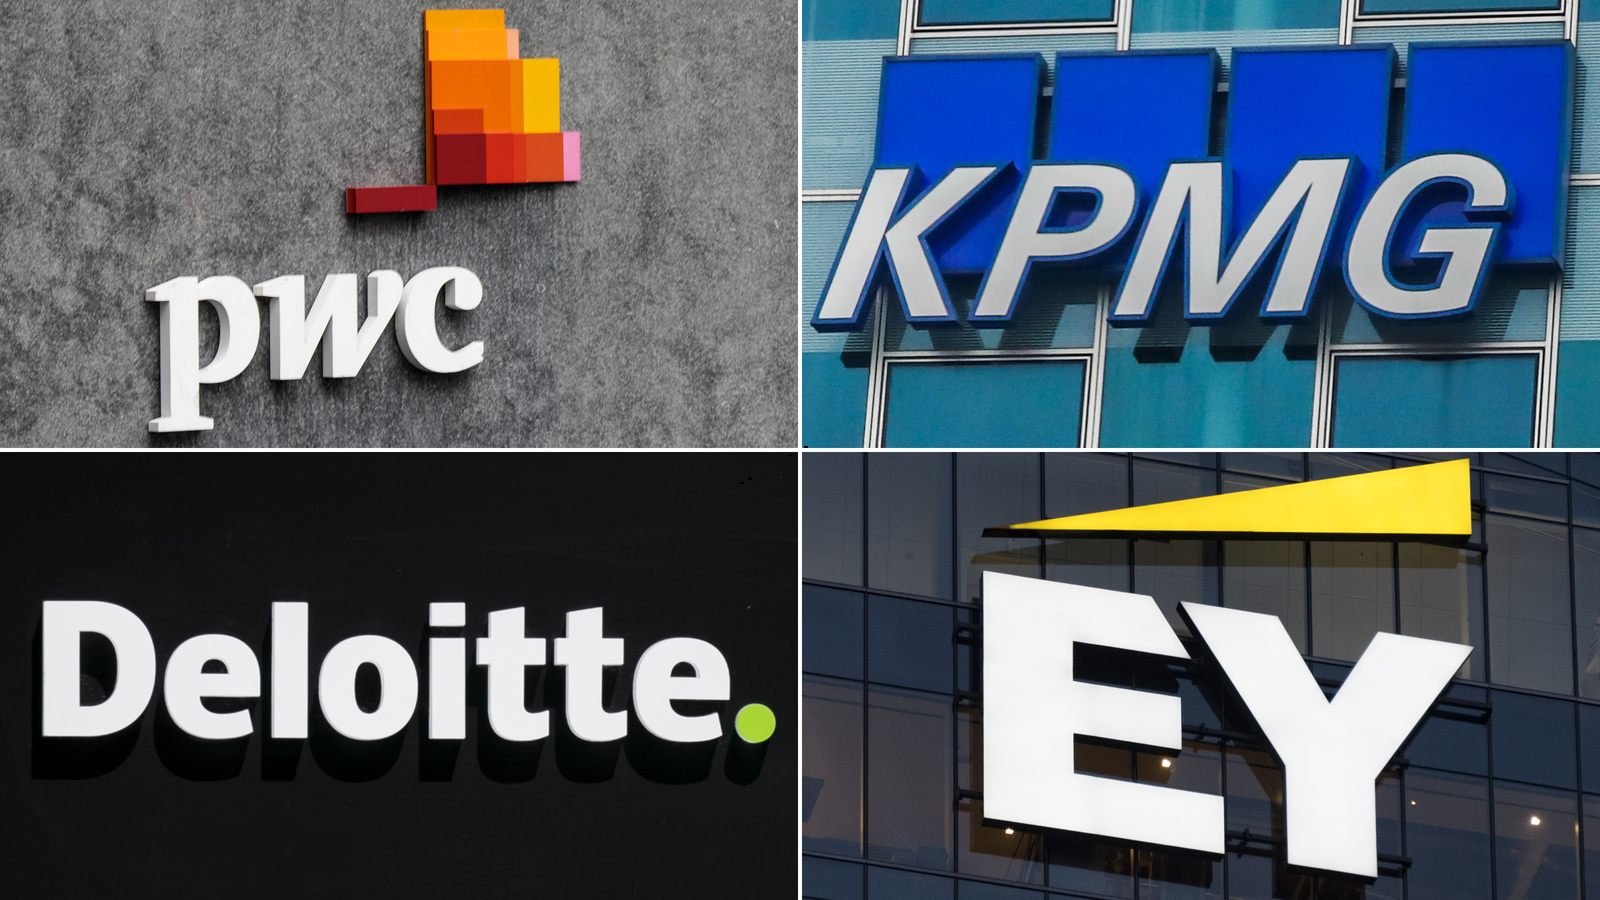 The Big 4 audit firms keep failing. Now they're being forced to change